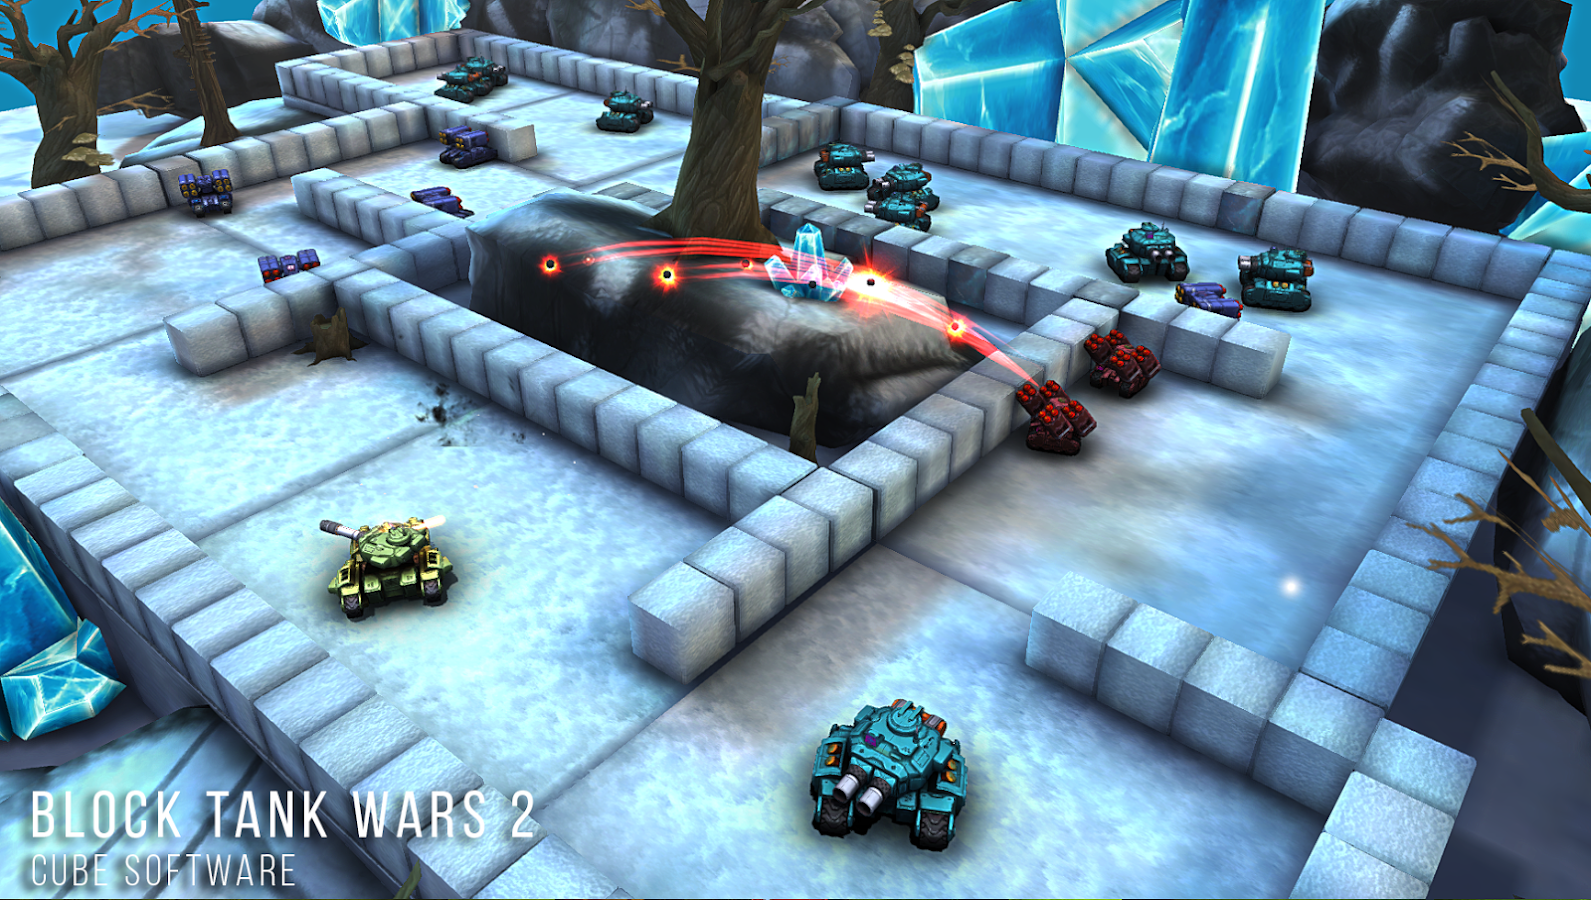 Block Tank Wars 2 Screenshot 5